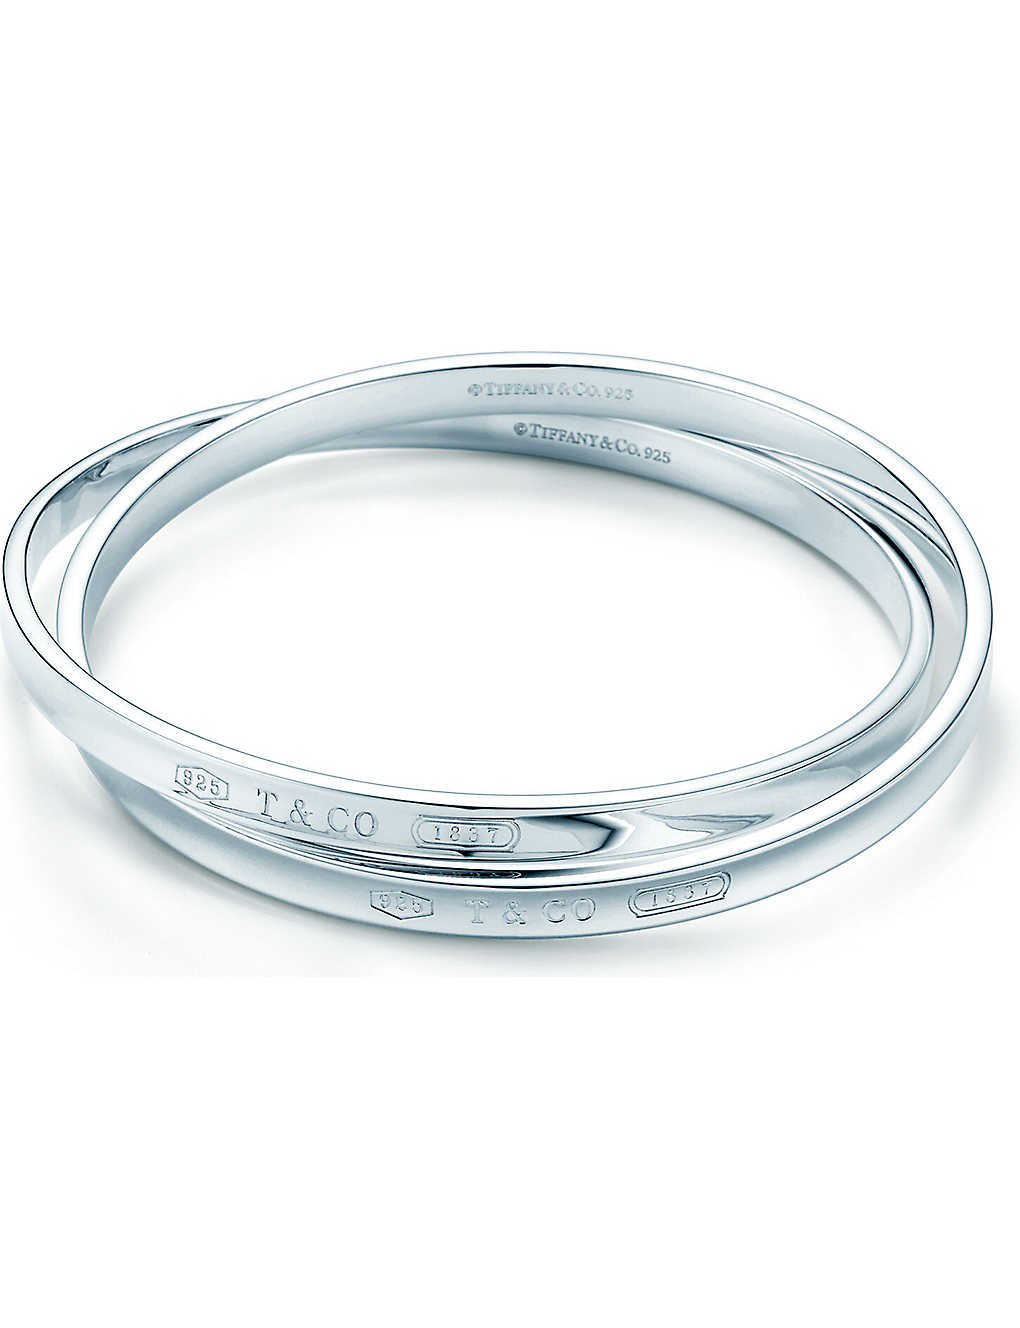 f088a330a TIFFANY & CO - Tiffany 1837 interlocking circles bangle in sterling ...